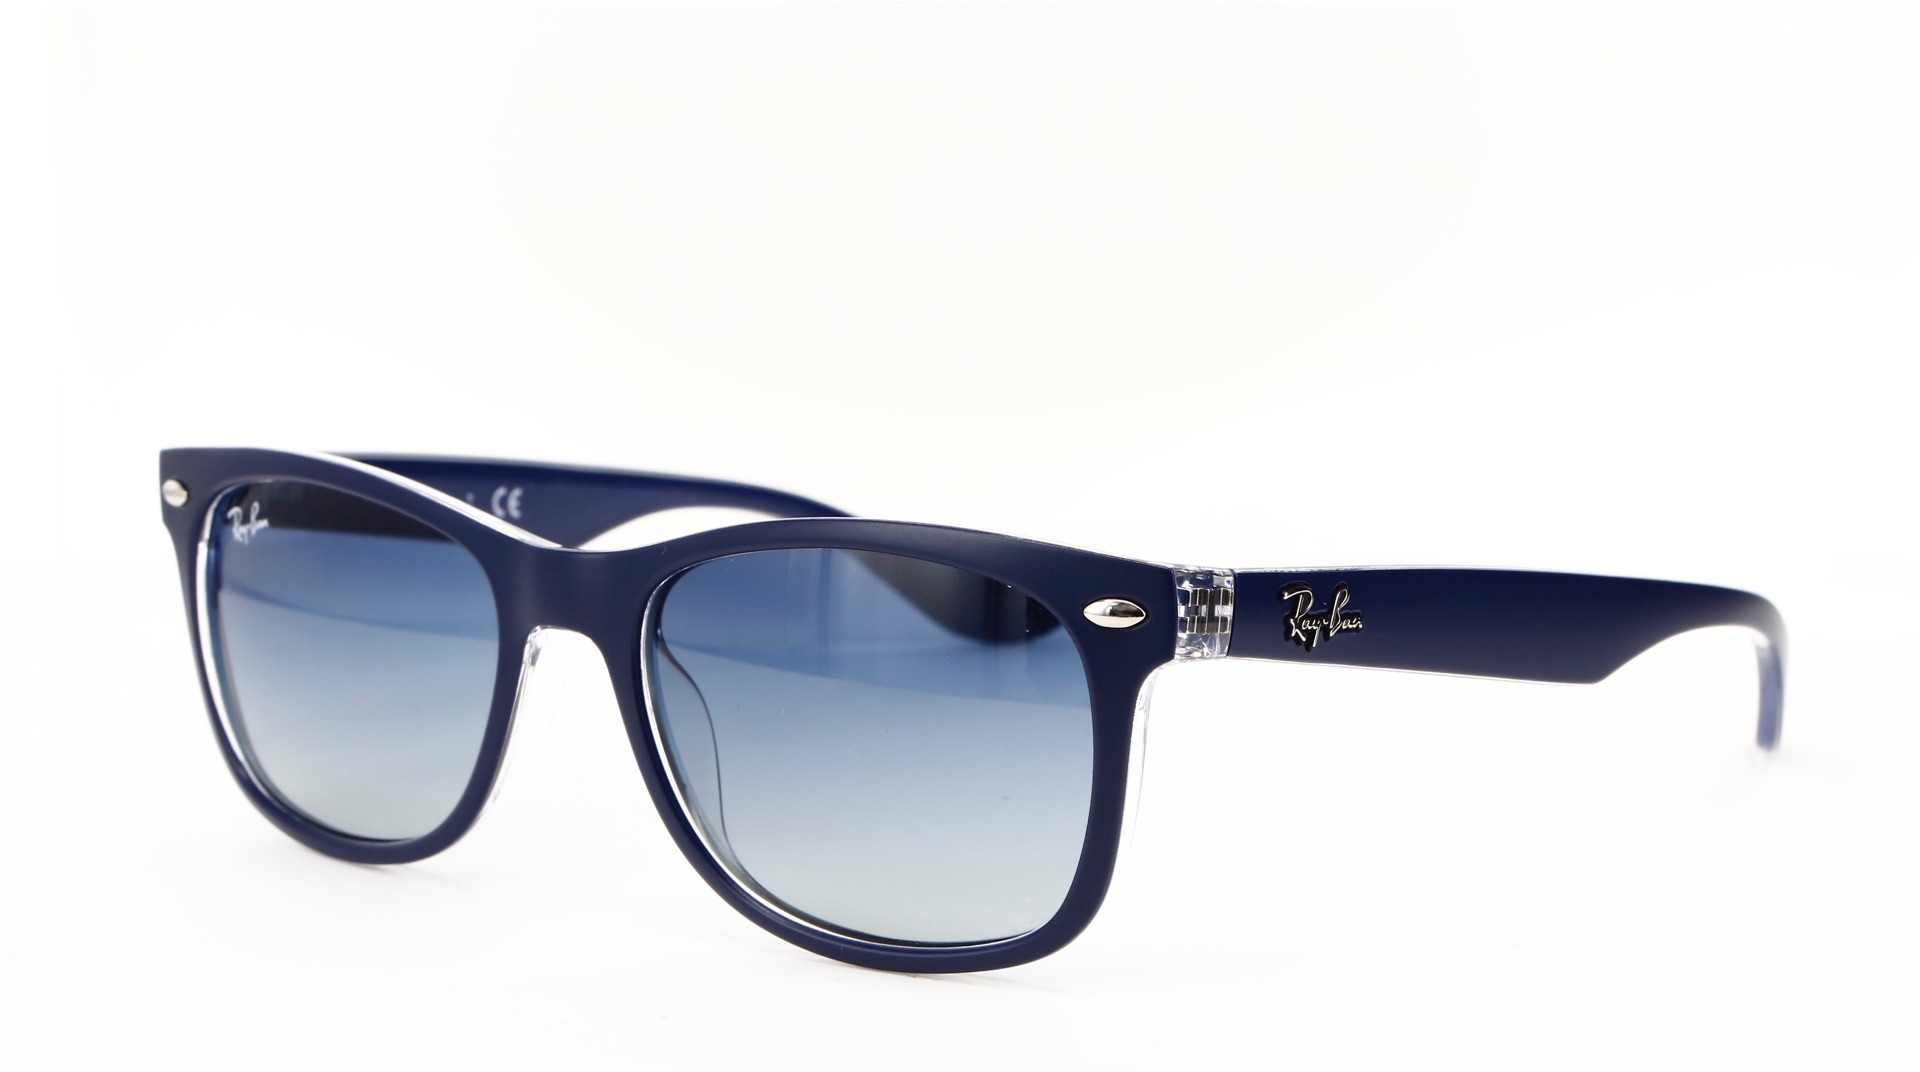 Ray-Ban - ref: 79141